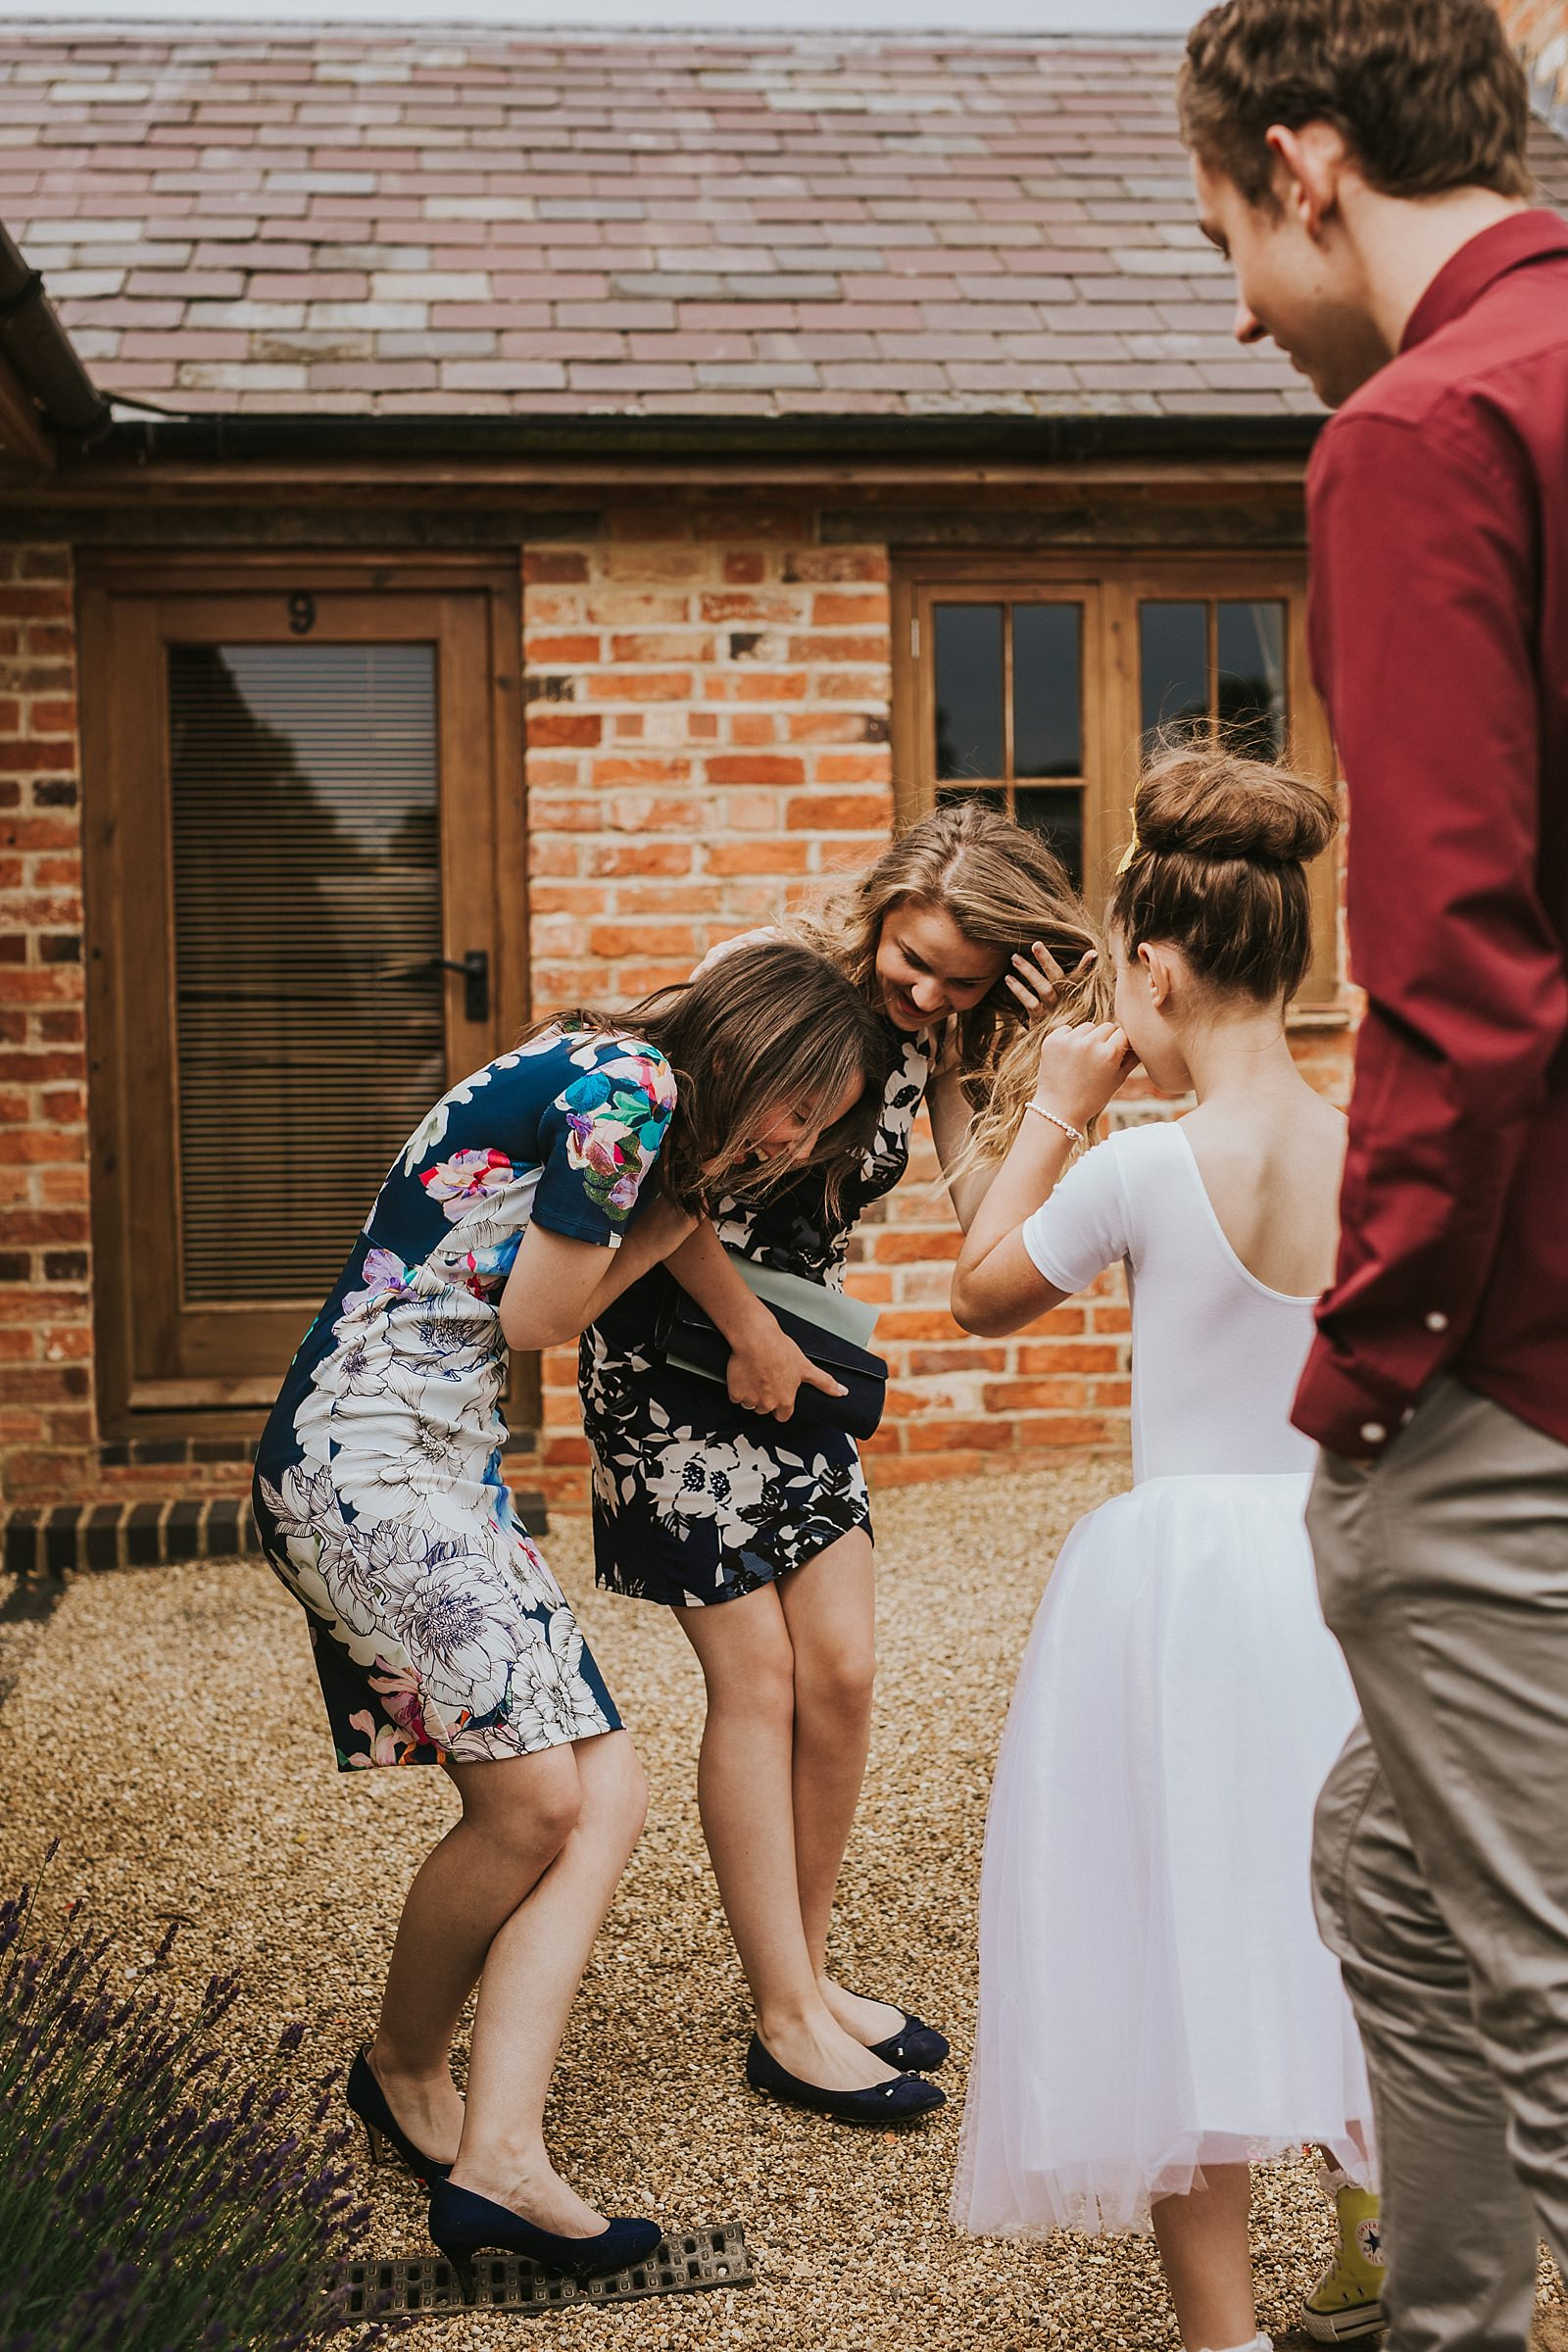 granary-at-fawsly-wedding-paula-stephen-436